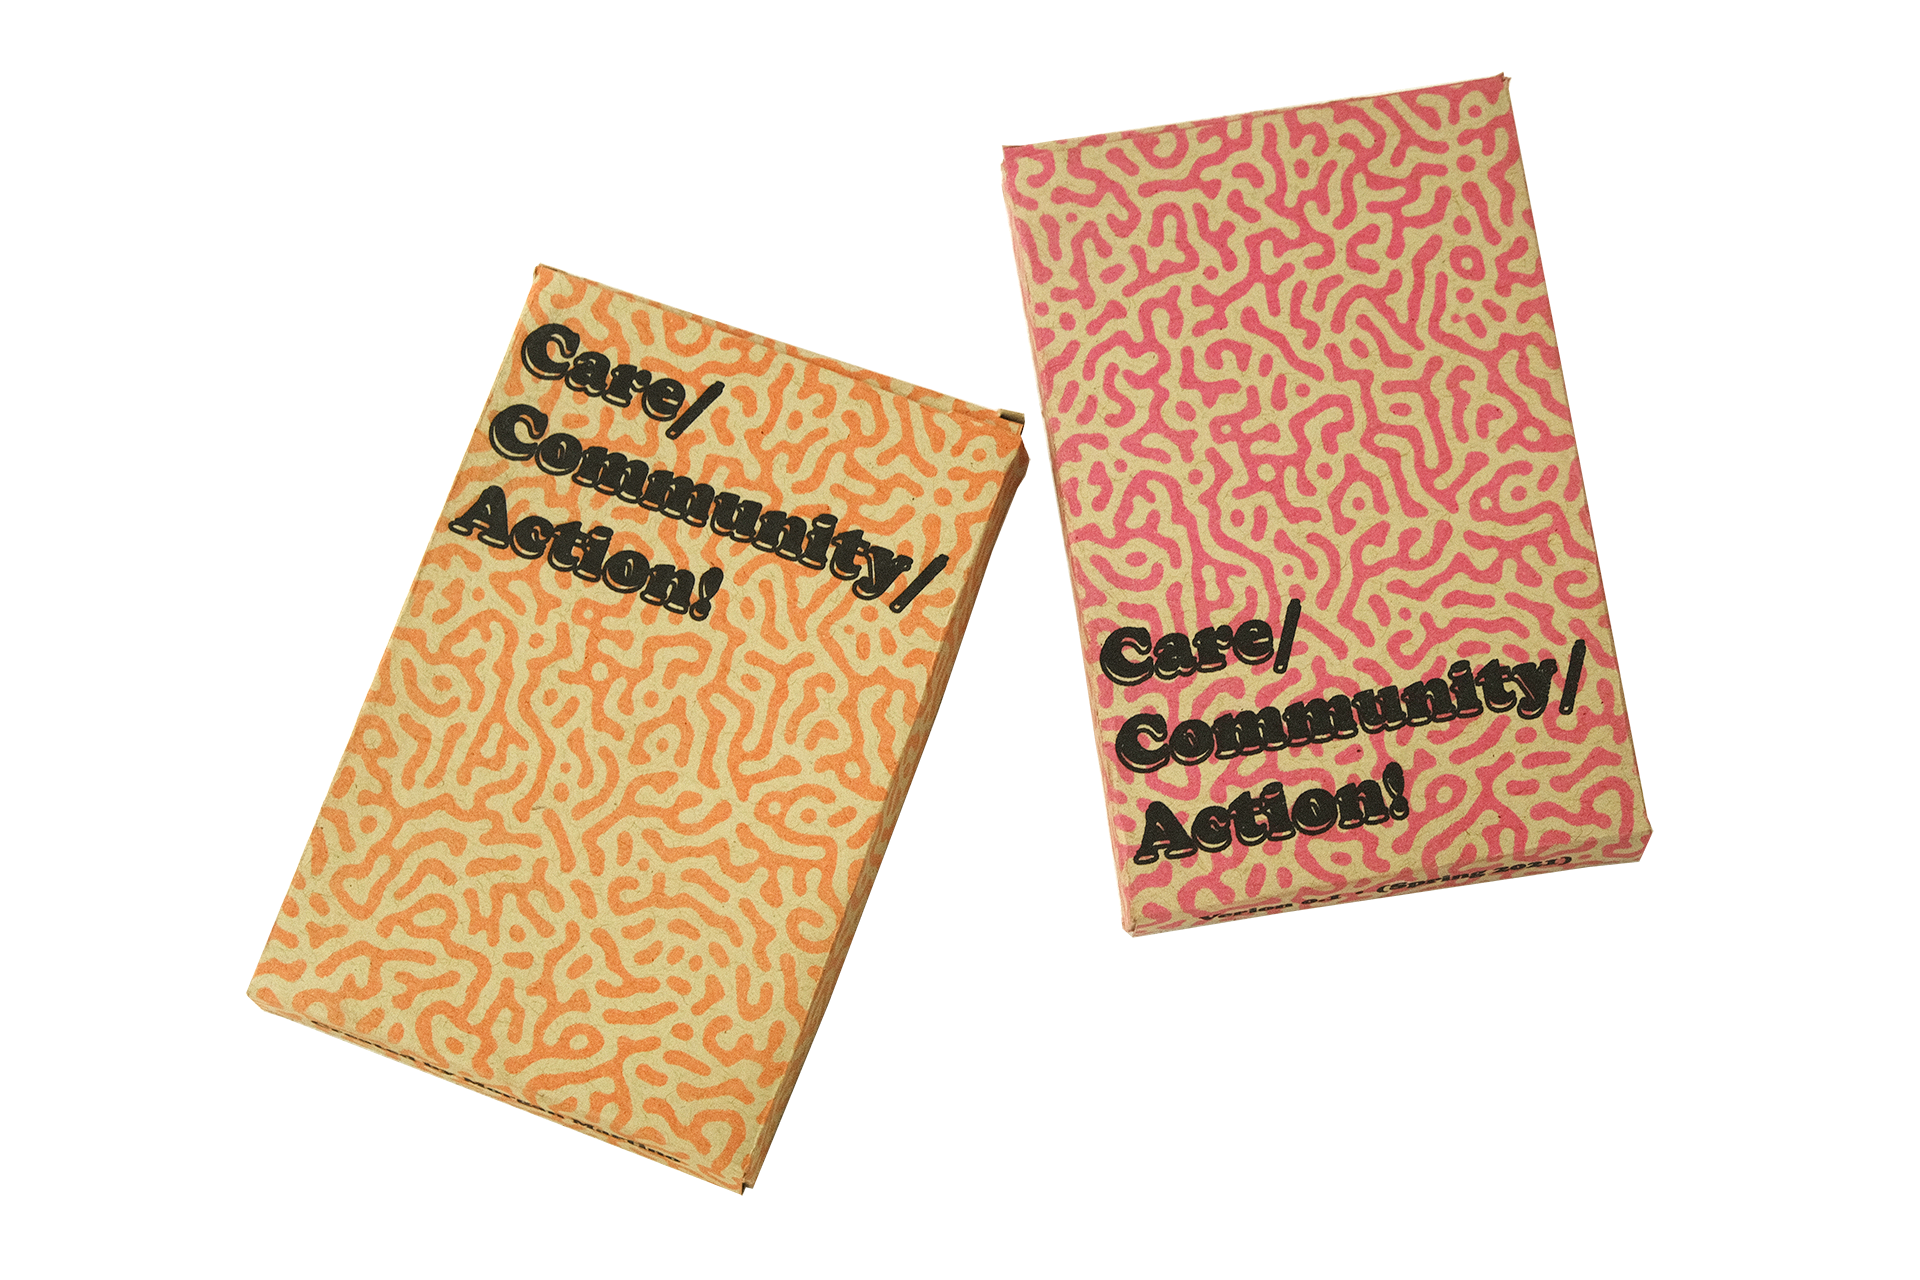 """Two small cardboard boxes printed in a pattern of organic lines, one fluorescent pink and one fluorescent orange, on a transparent background. Both boxes have """"Care Community Action!"""" printed in black on their front."""